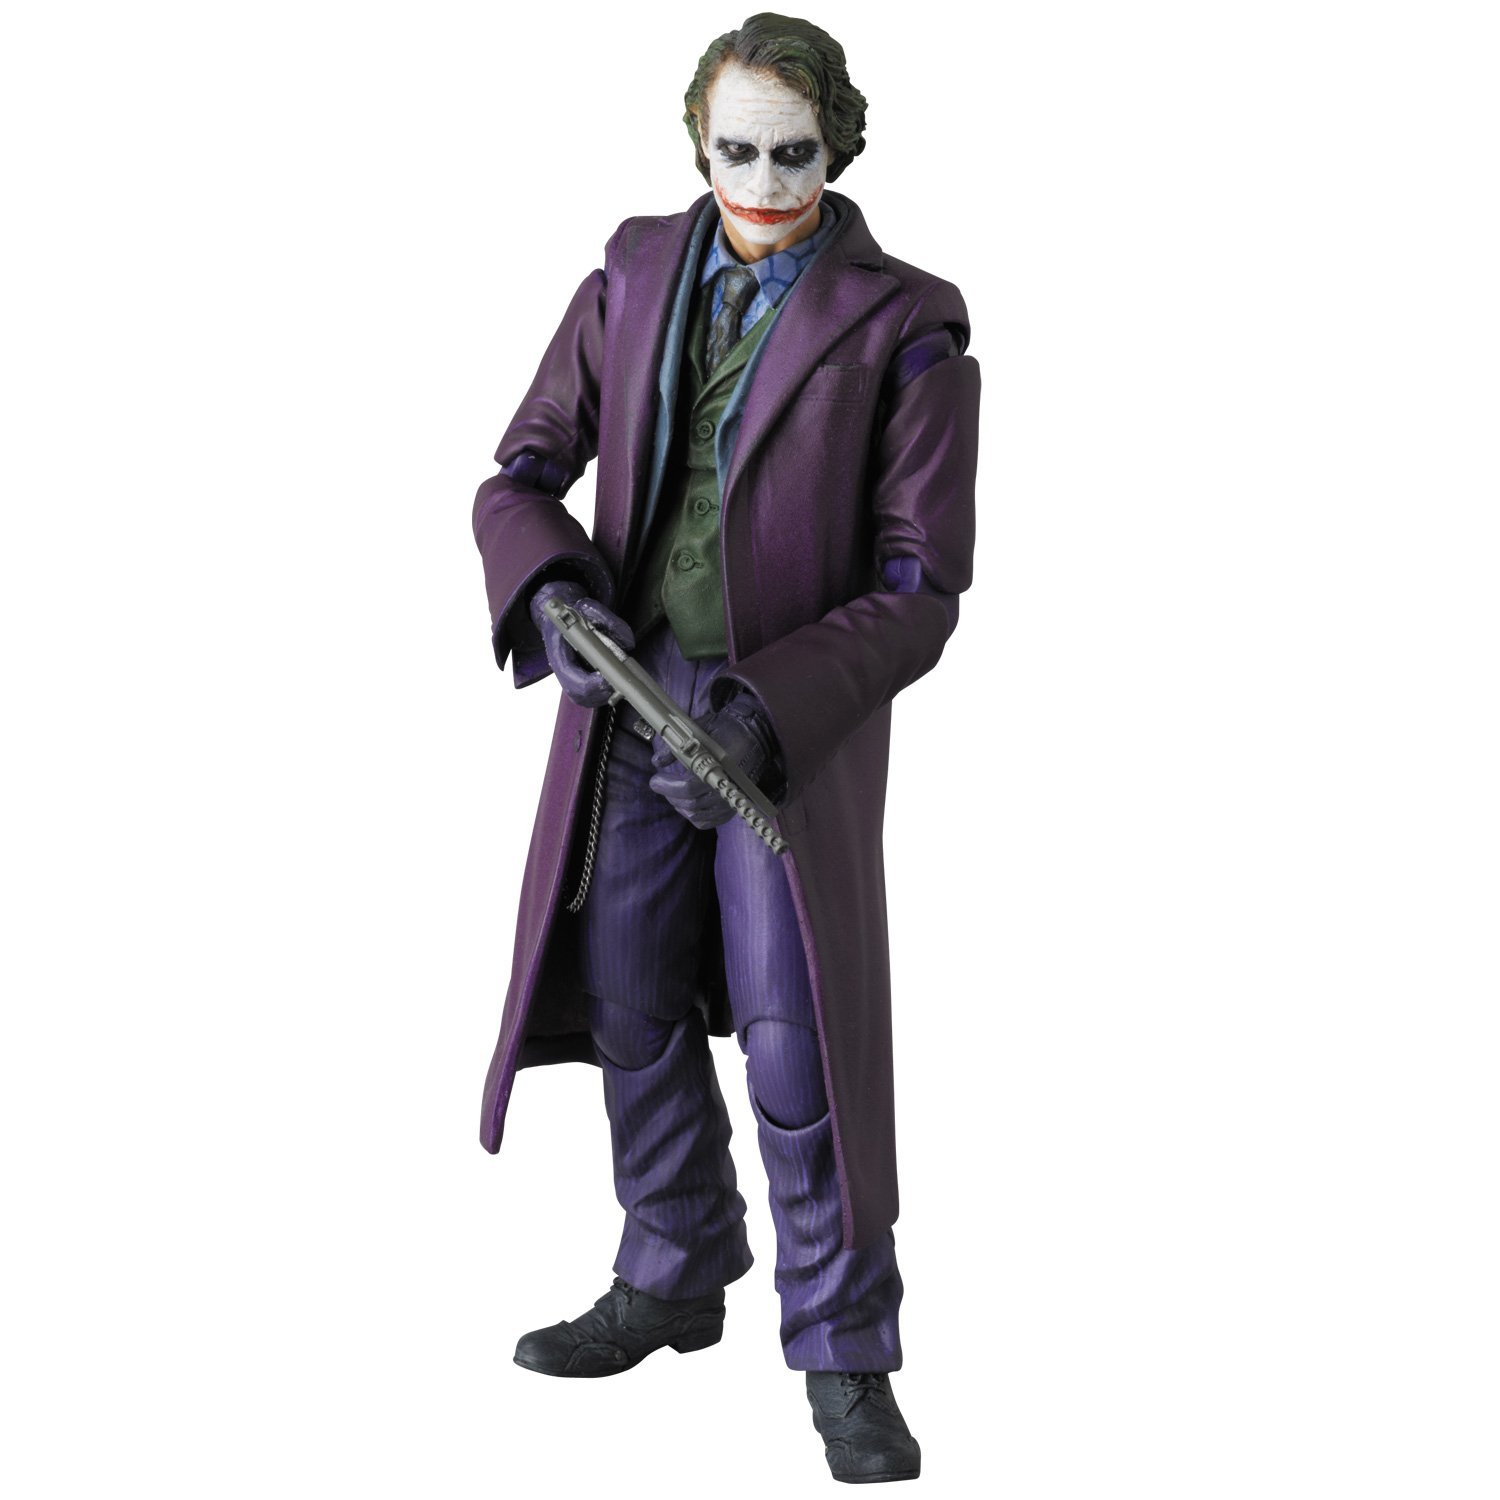 The Joker MAFEX Figure